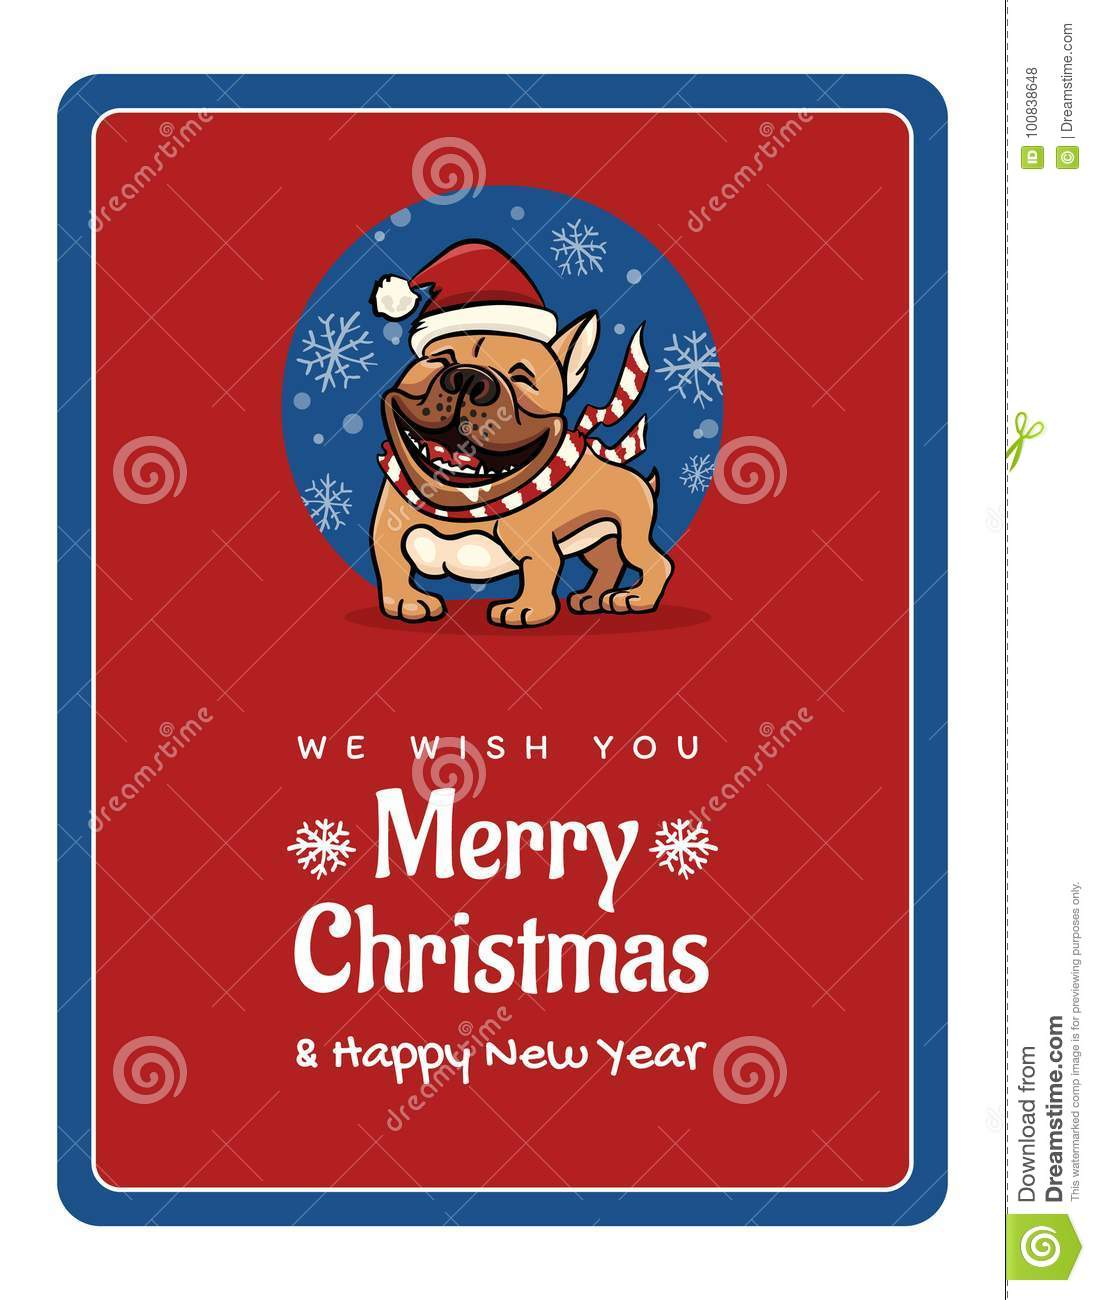 Greetings card we wish you a marry christmas and happy new year greetings card we wish you a marry christmas and happy new year funny english bulldog m4hsunfo